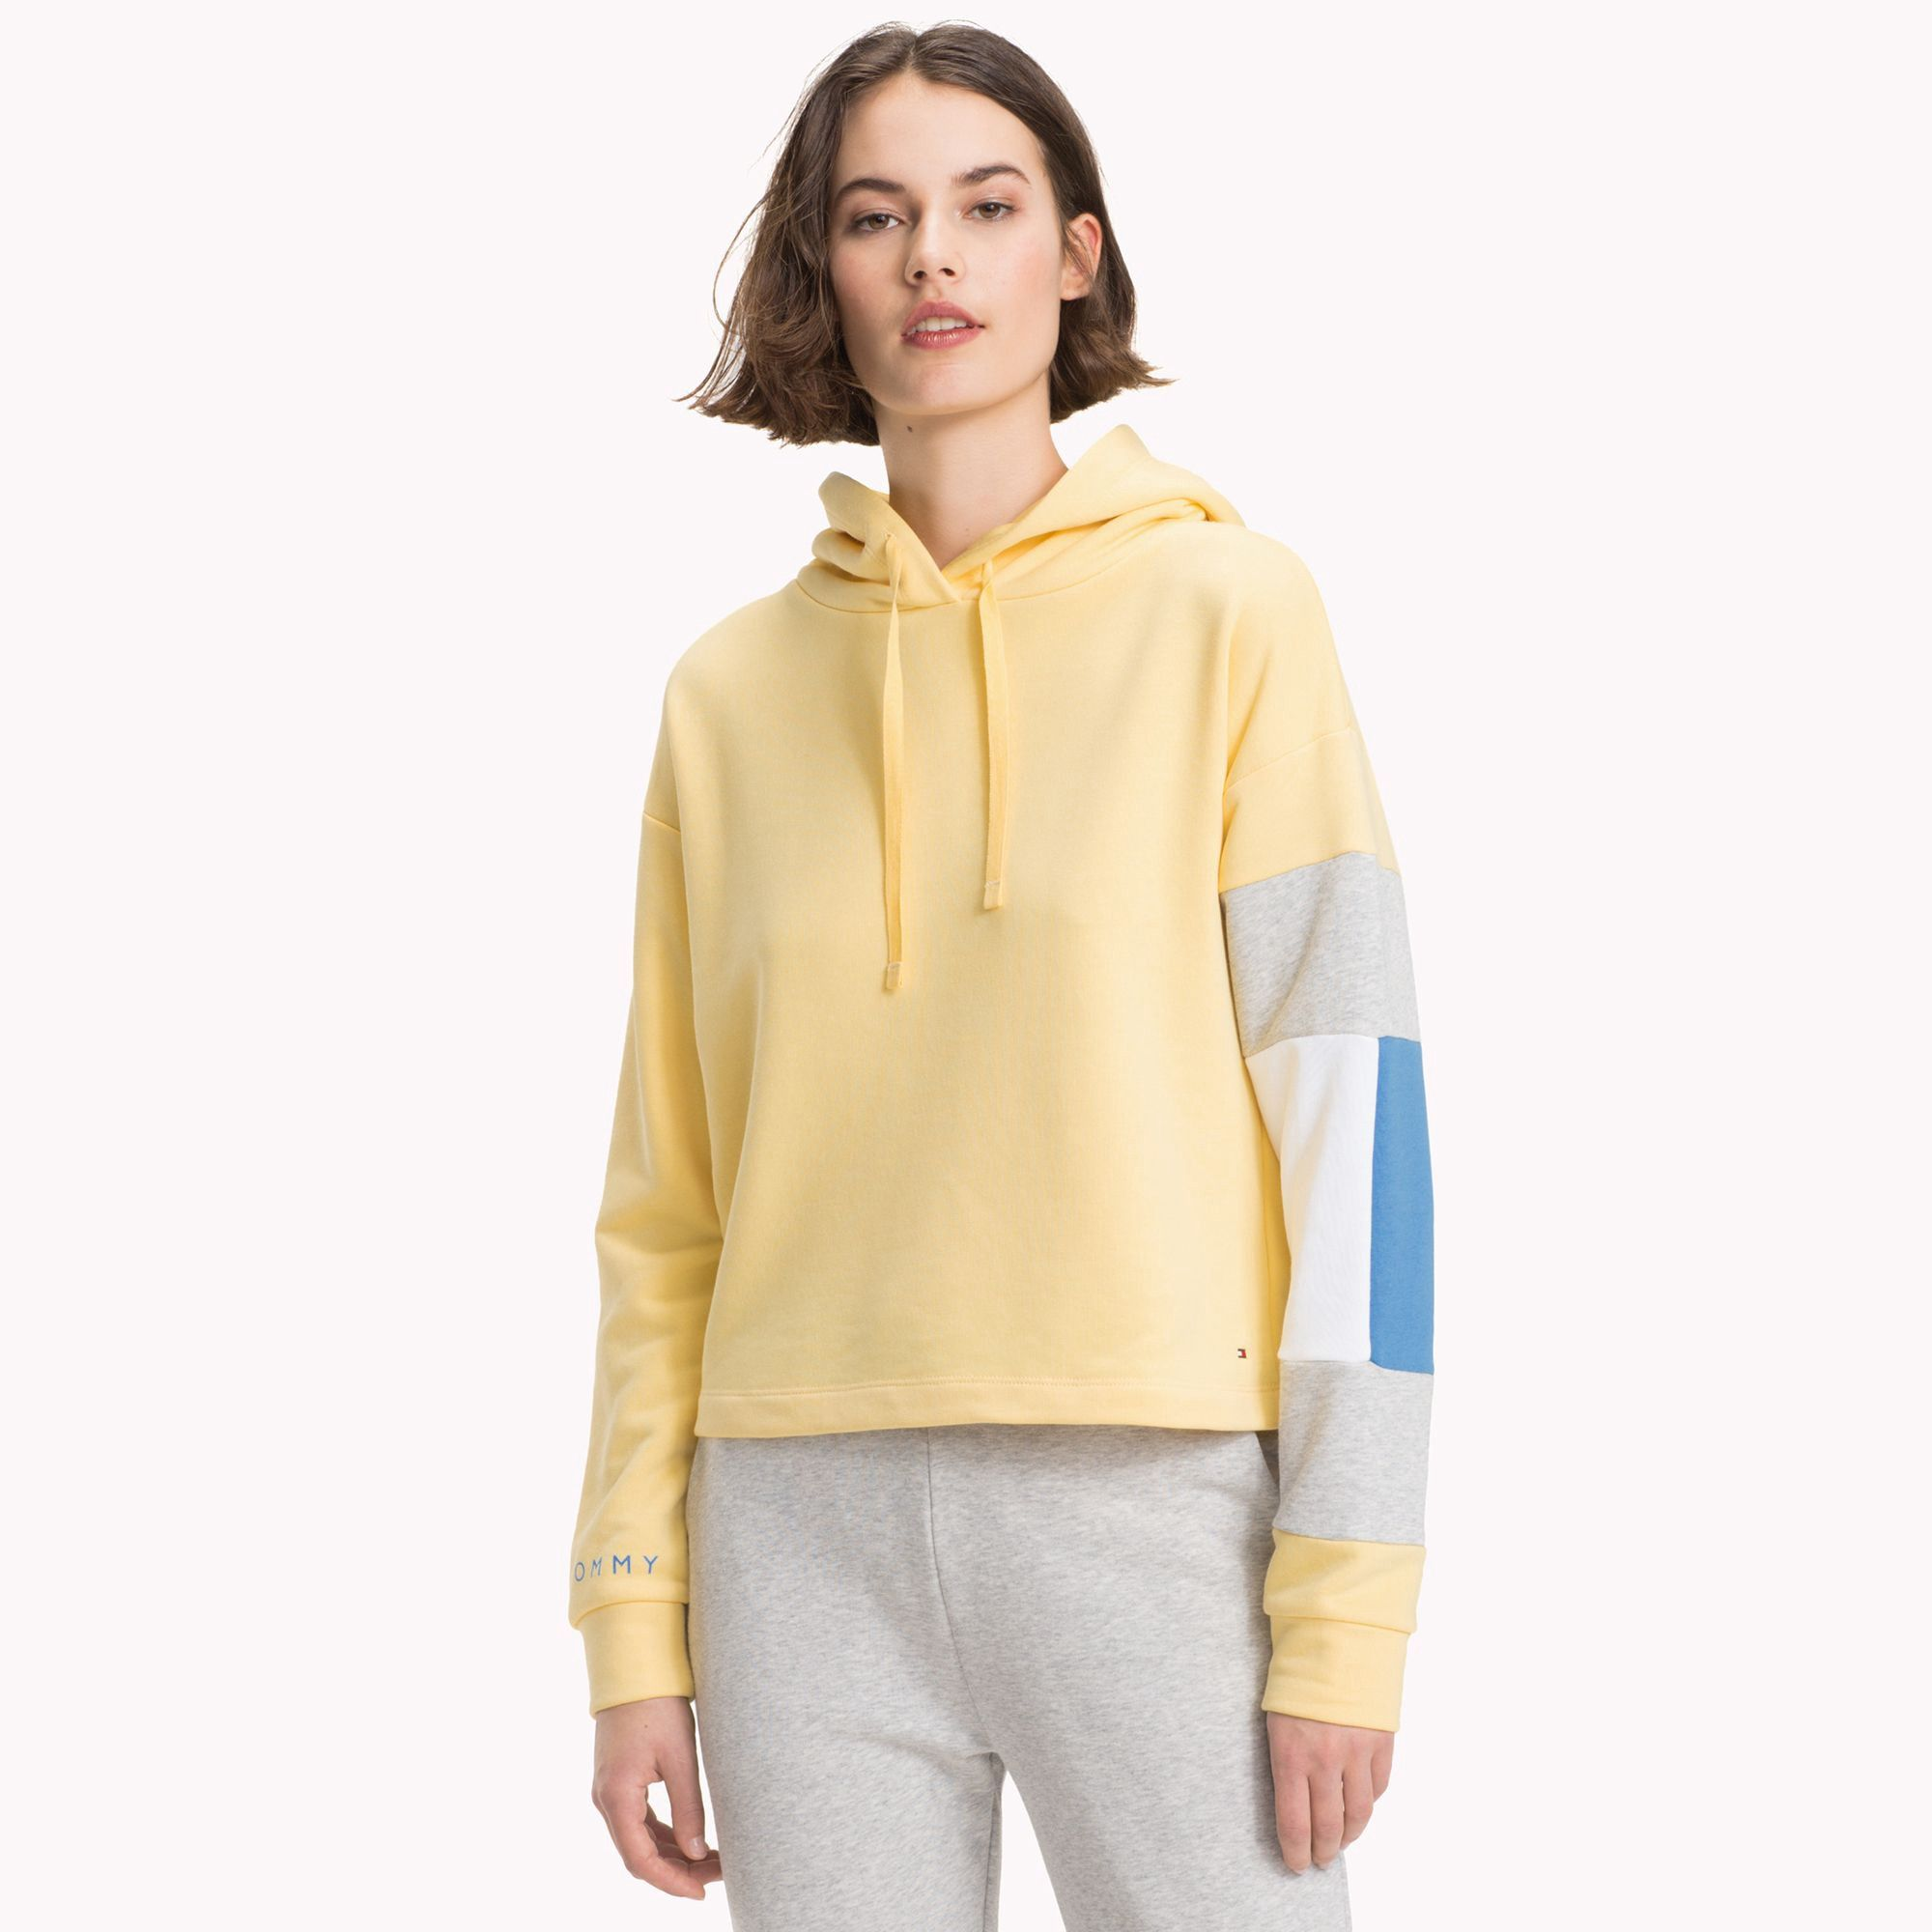 e204dd66 Tommy Hilfiger Athleisure Hoodie - Regatta Xl in 2019 | Products ...